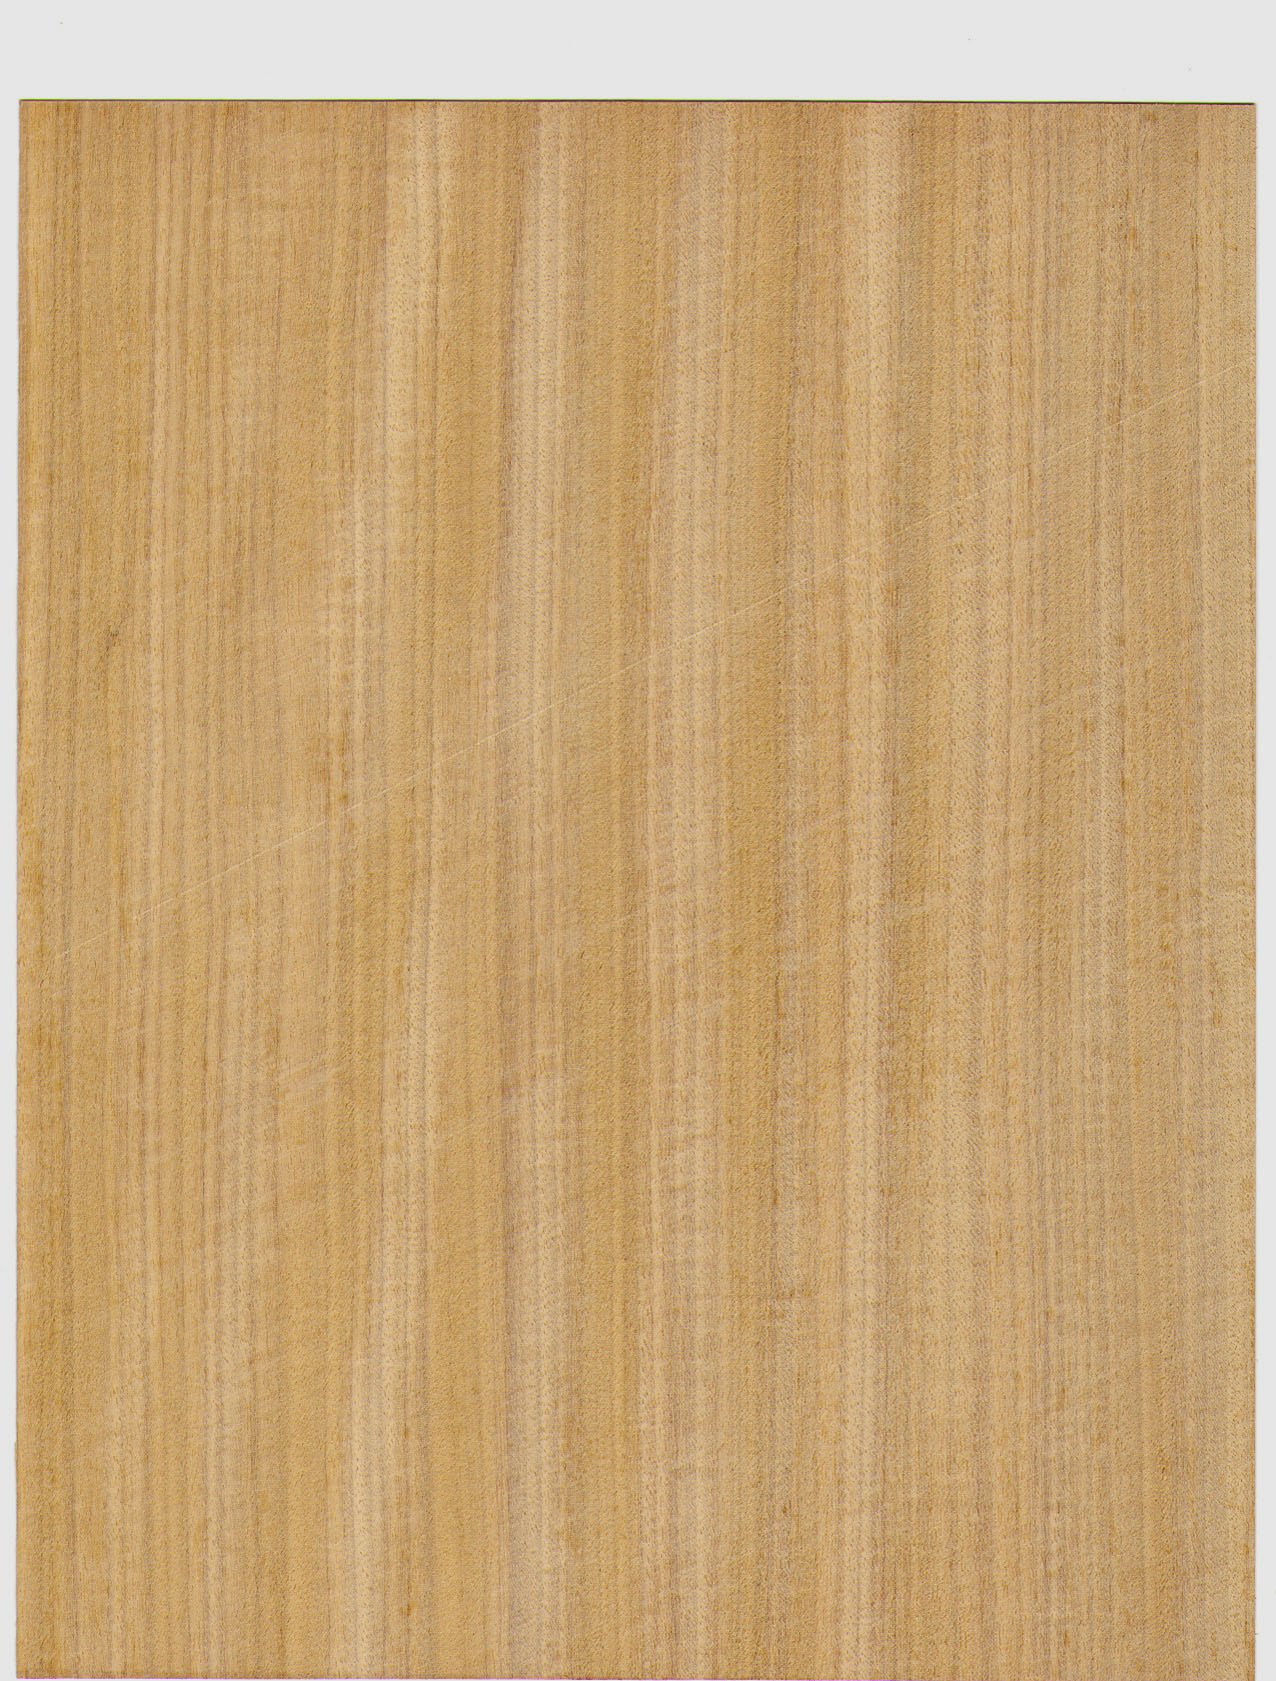 Wood texture laminate download photo background wood for Laminated wood